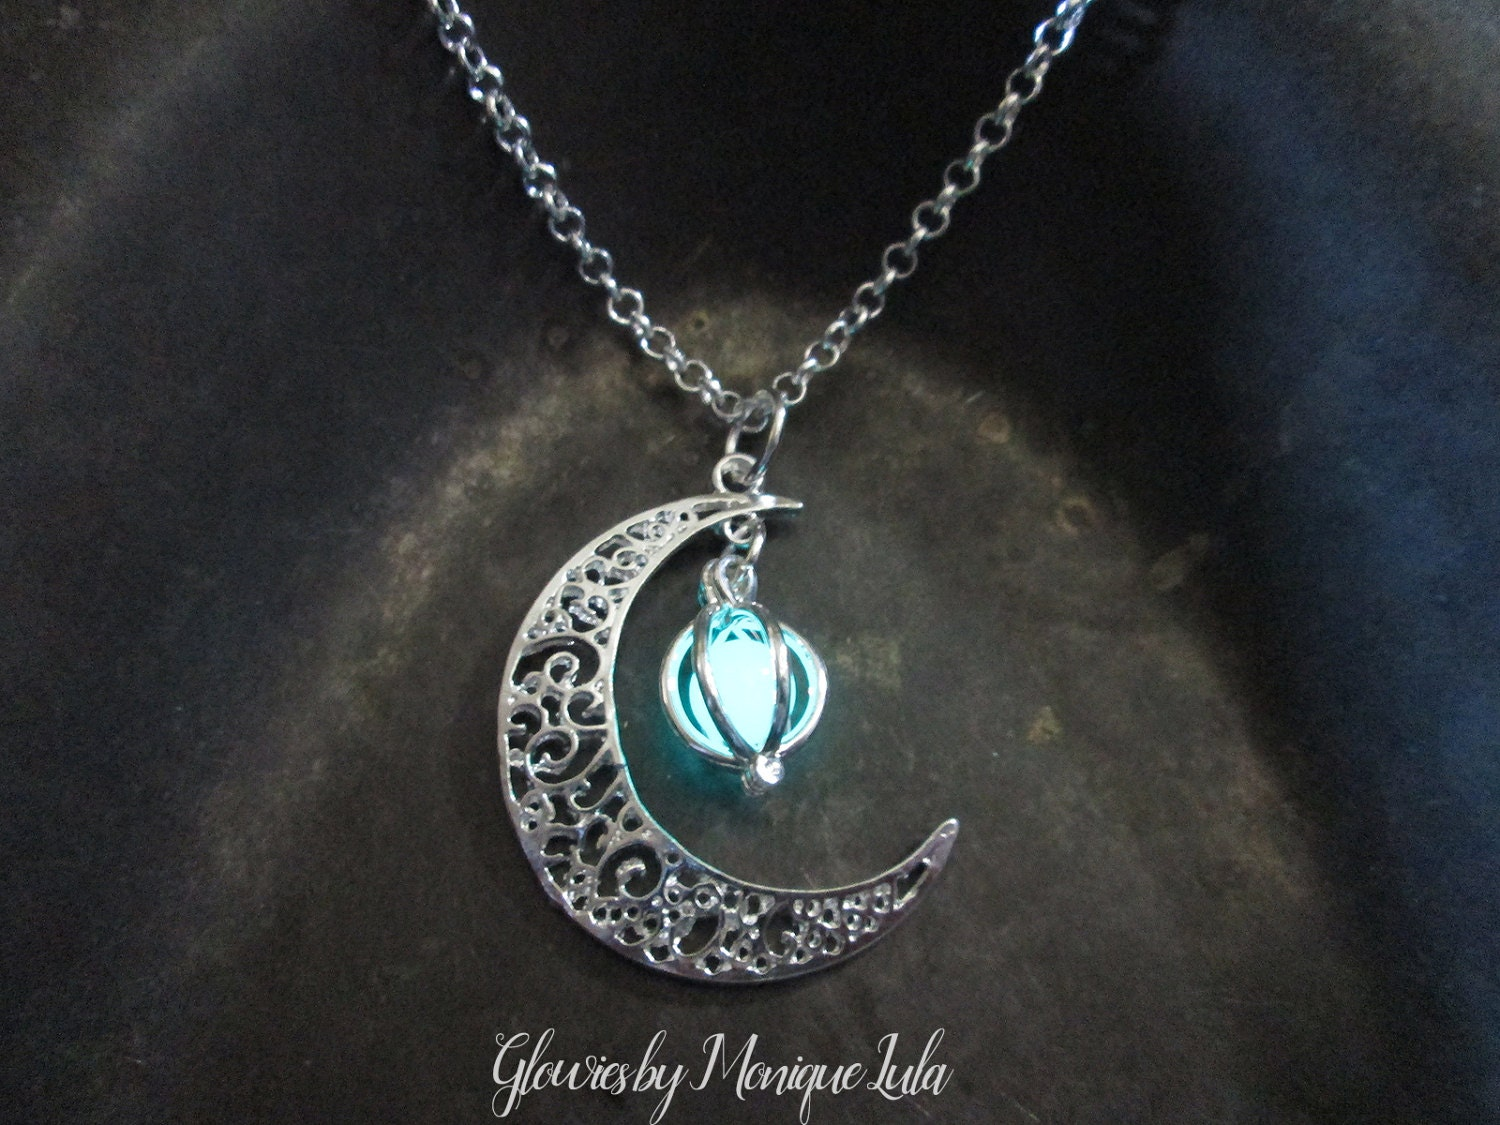 necklace dark the locket heart in glowing jewelry chain round fashion products glow pendant